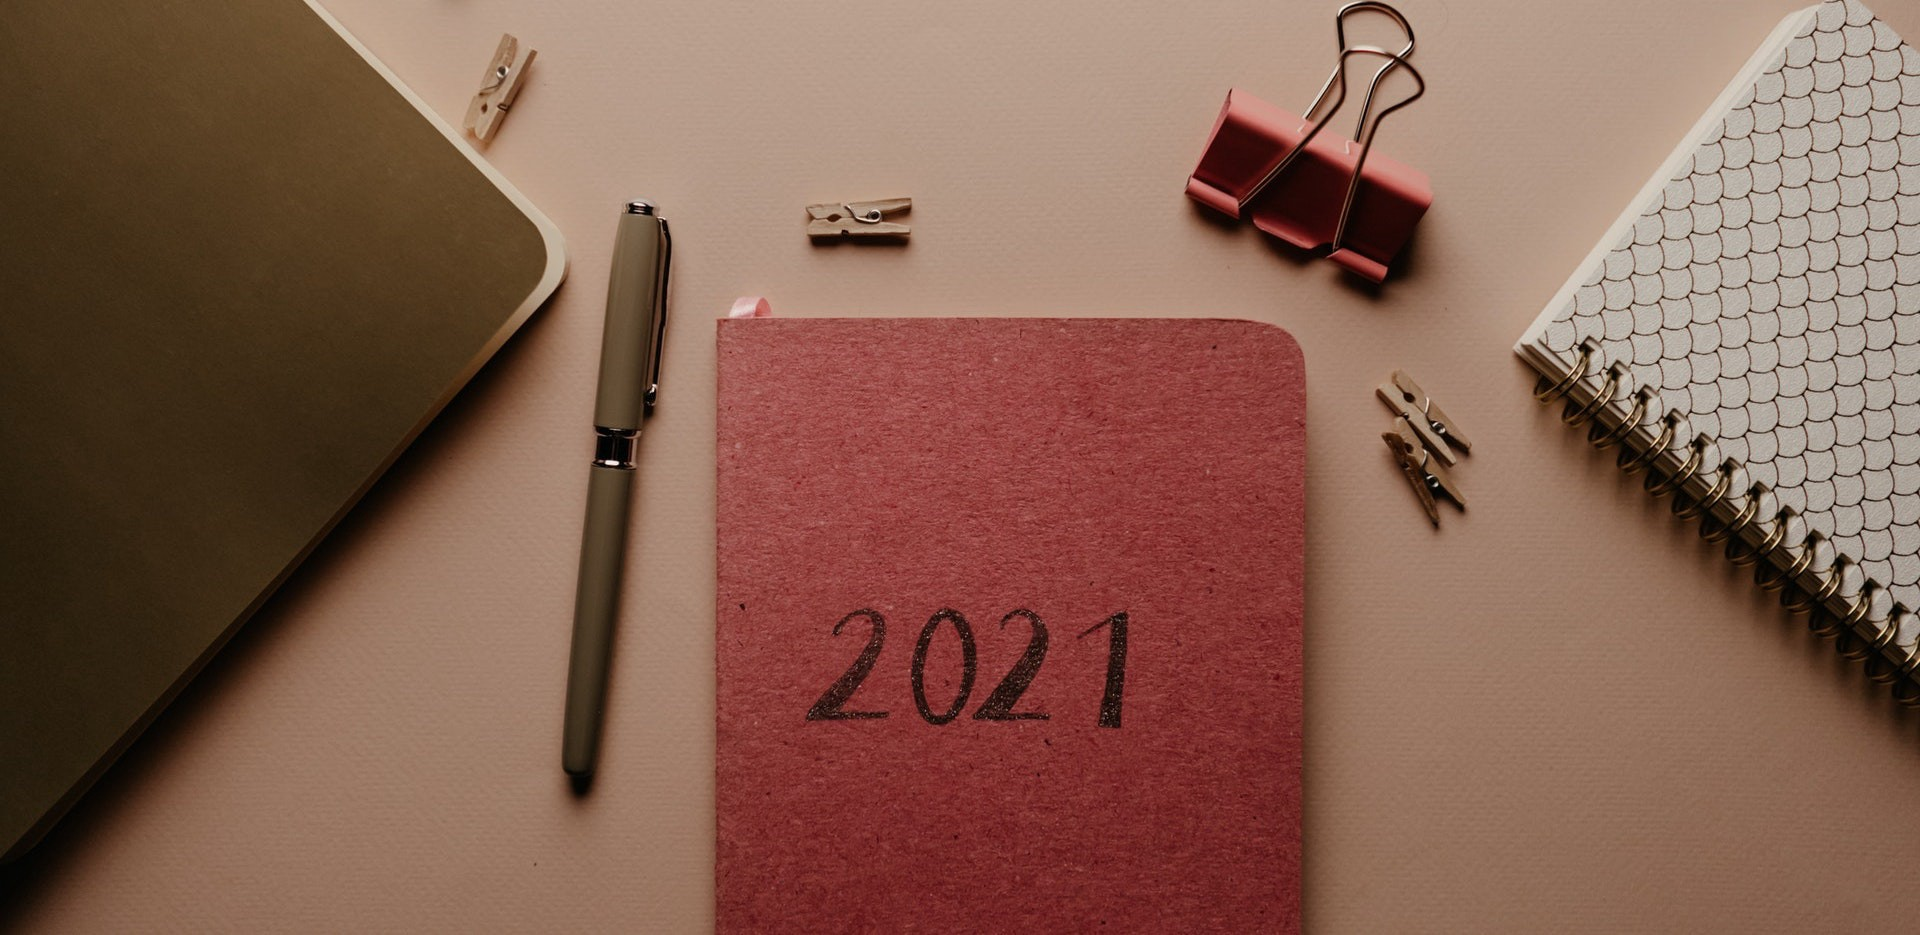 Desktop with 2021 journal and pen